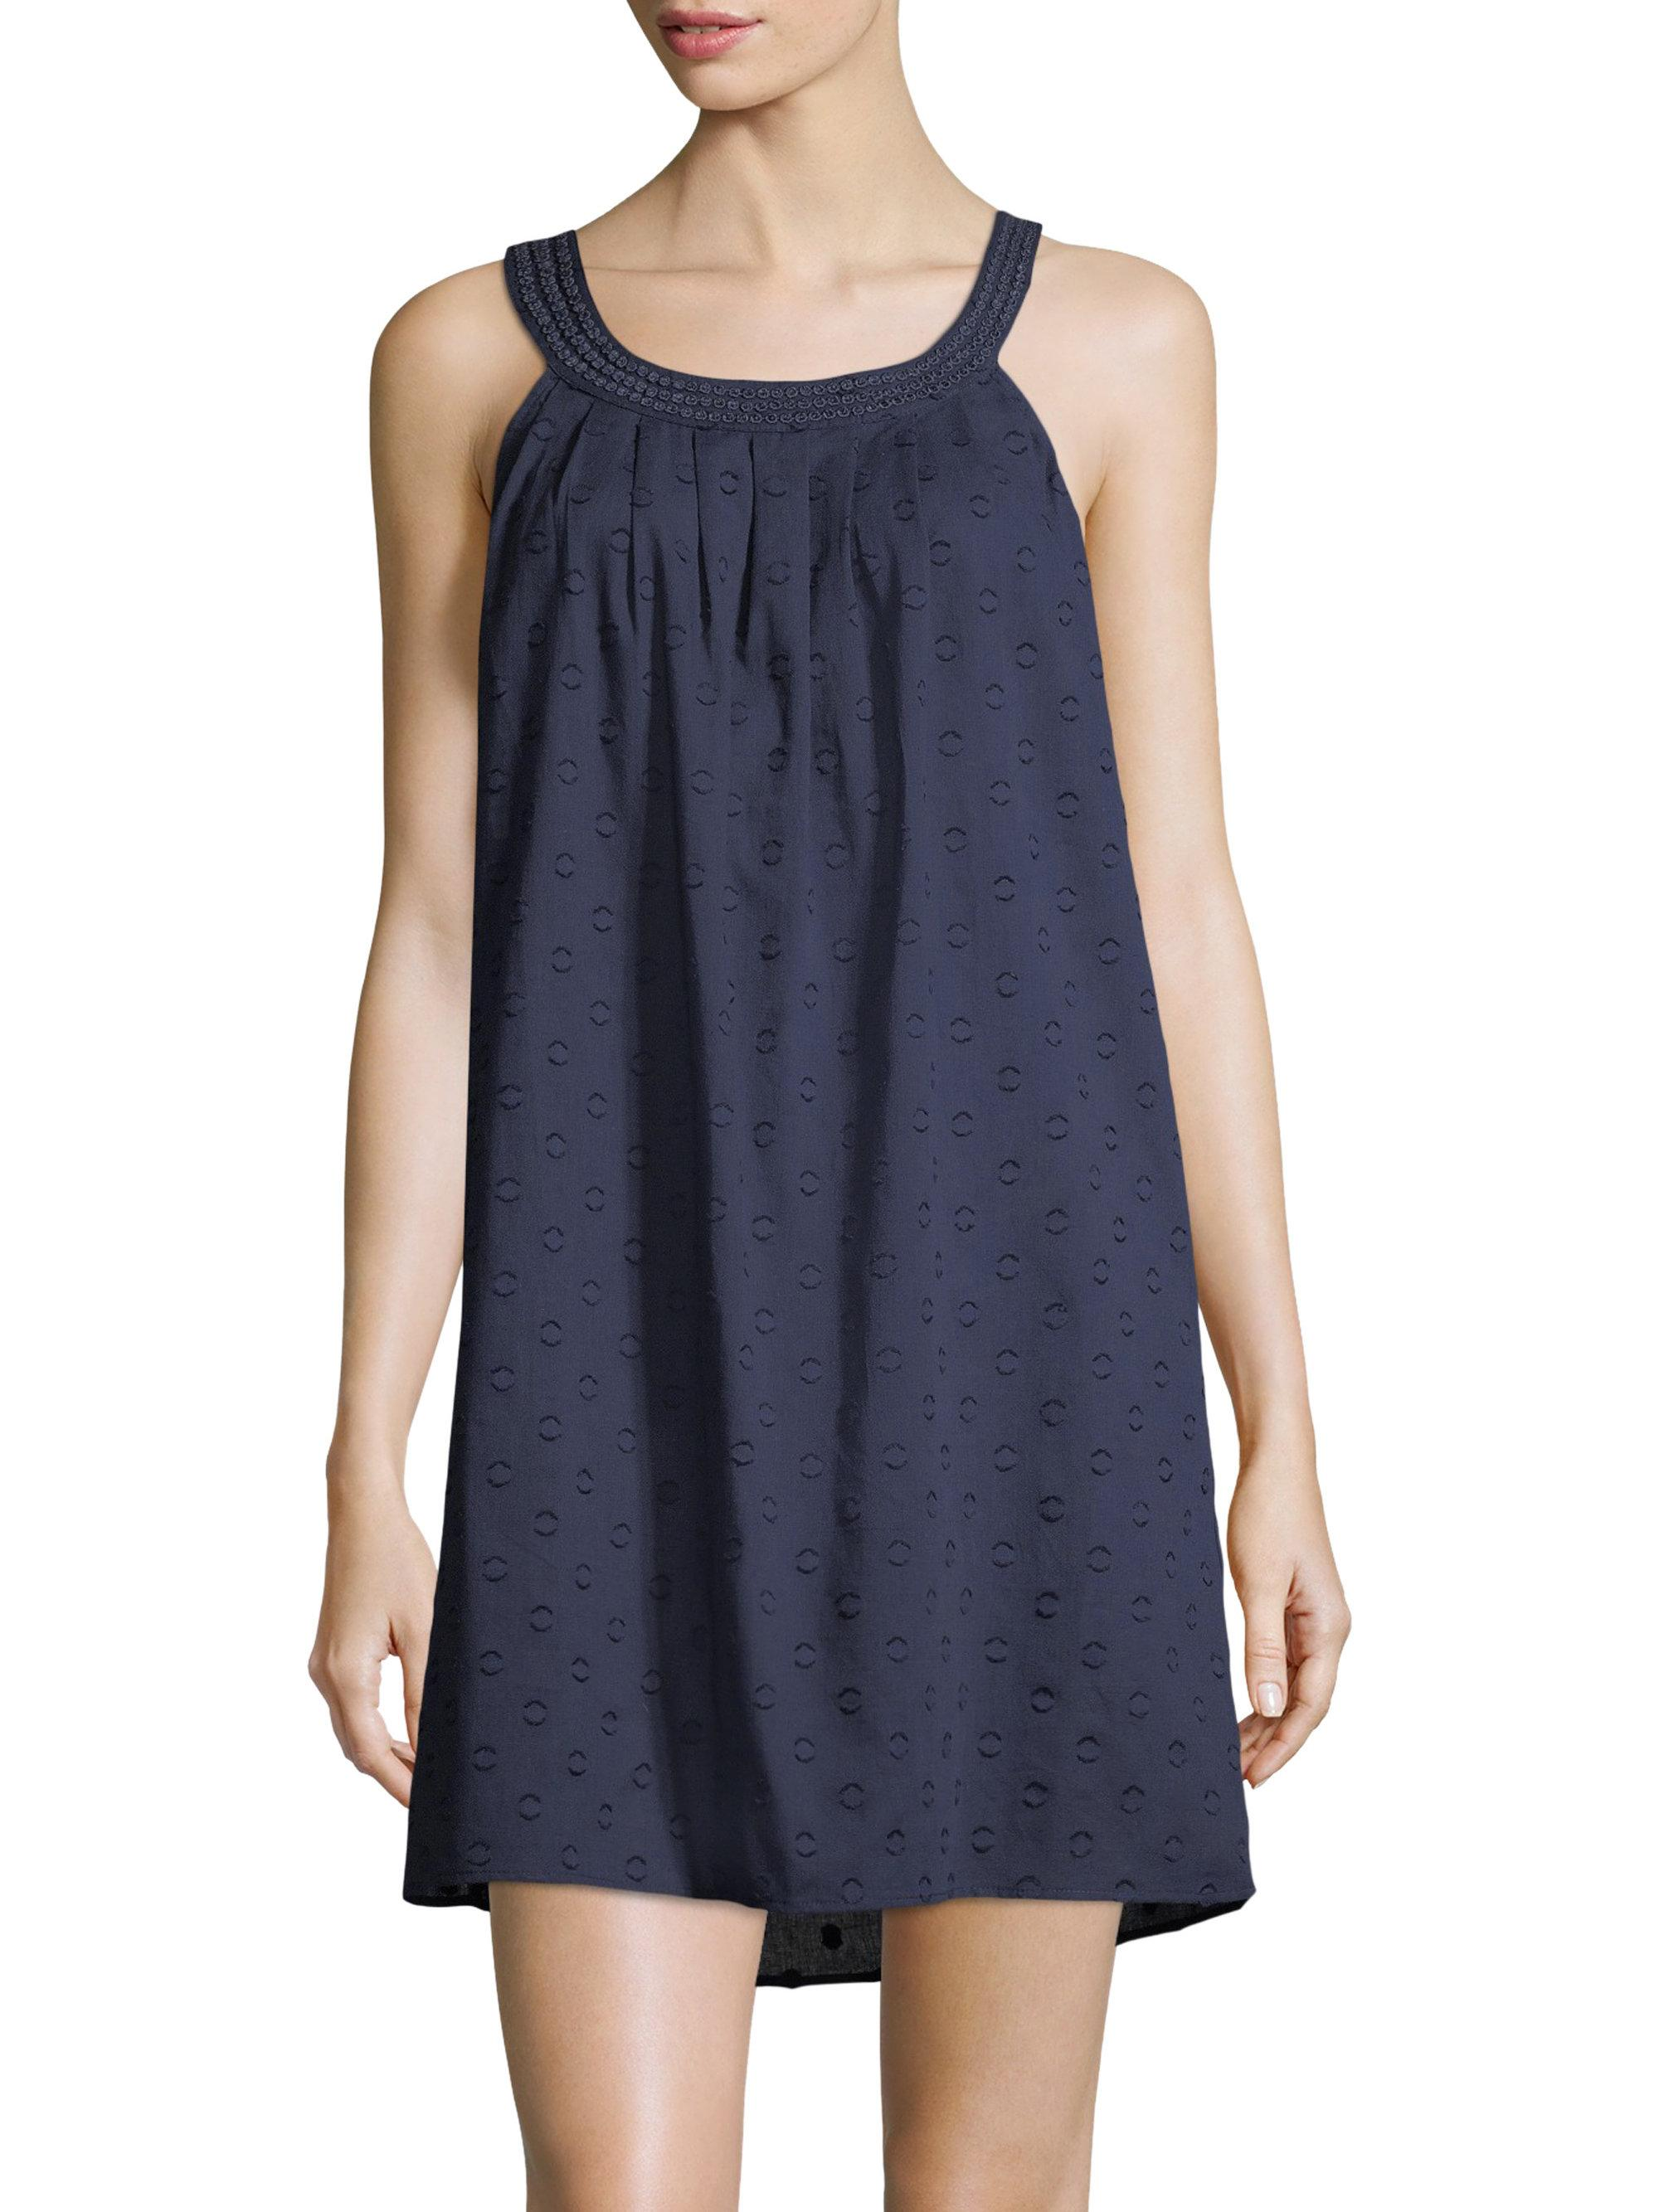 Lyst - Saks Fifth Avenue Collection Cotton Dot Chemise in Blue